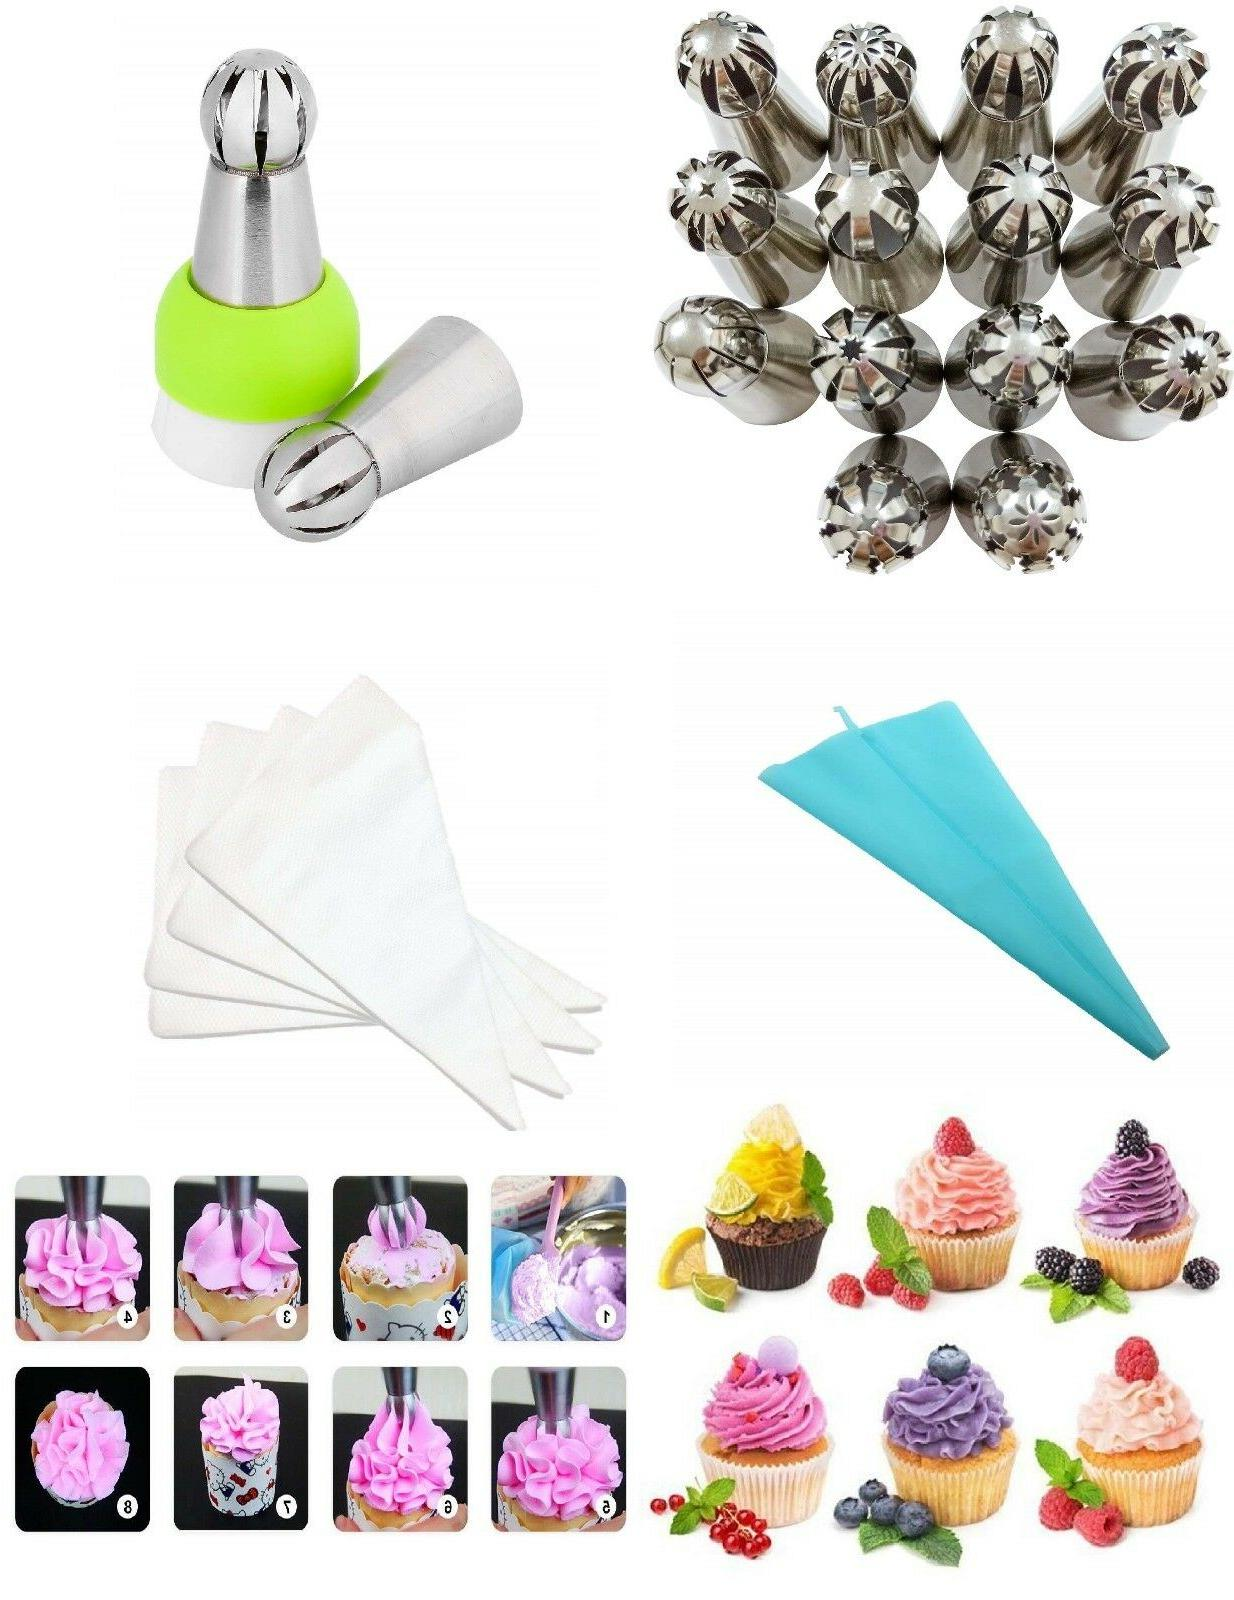 14 sphere ball russian icing piping tips